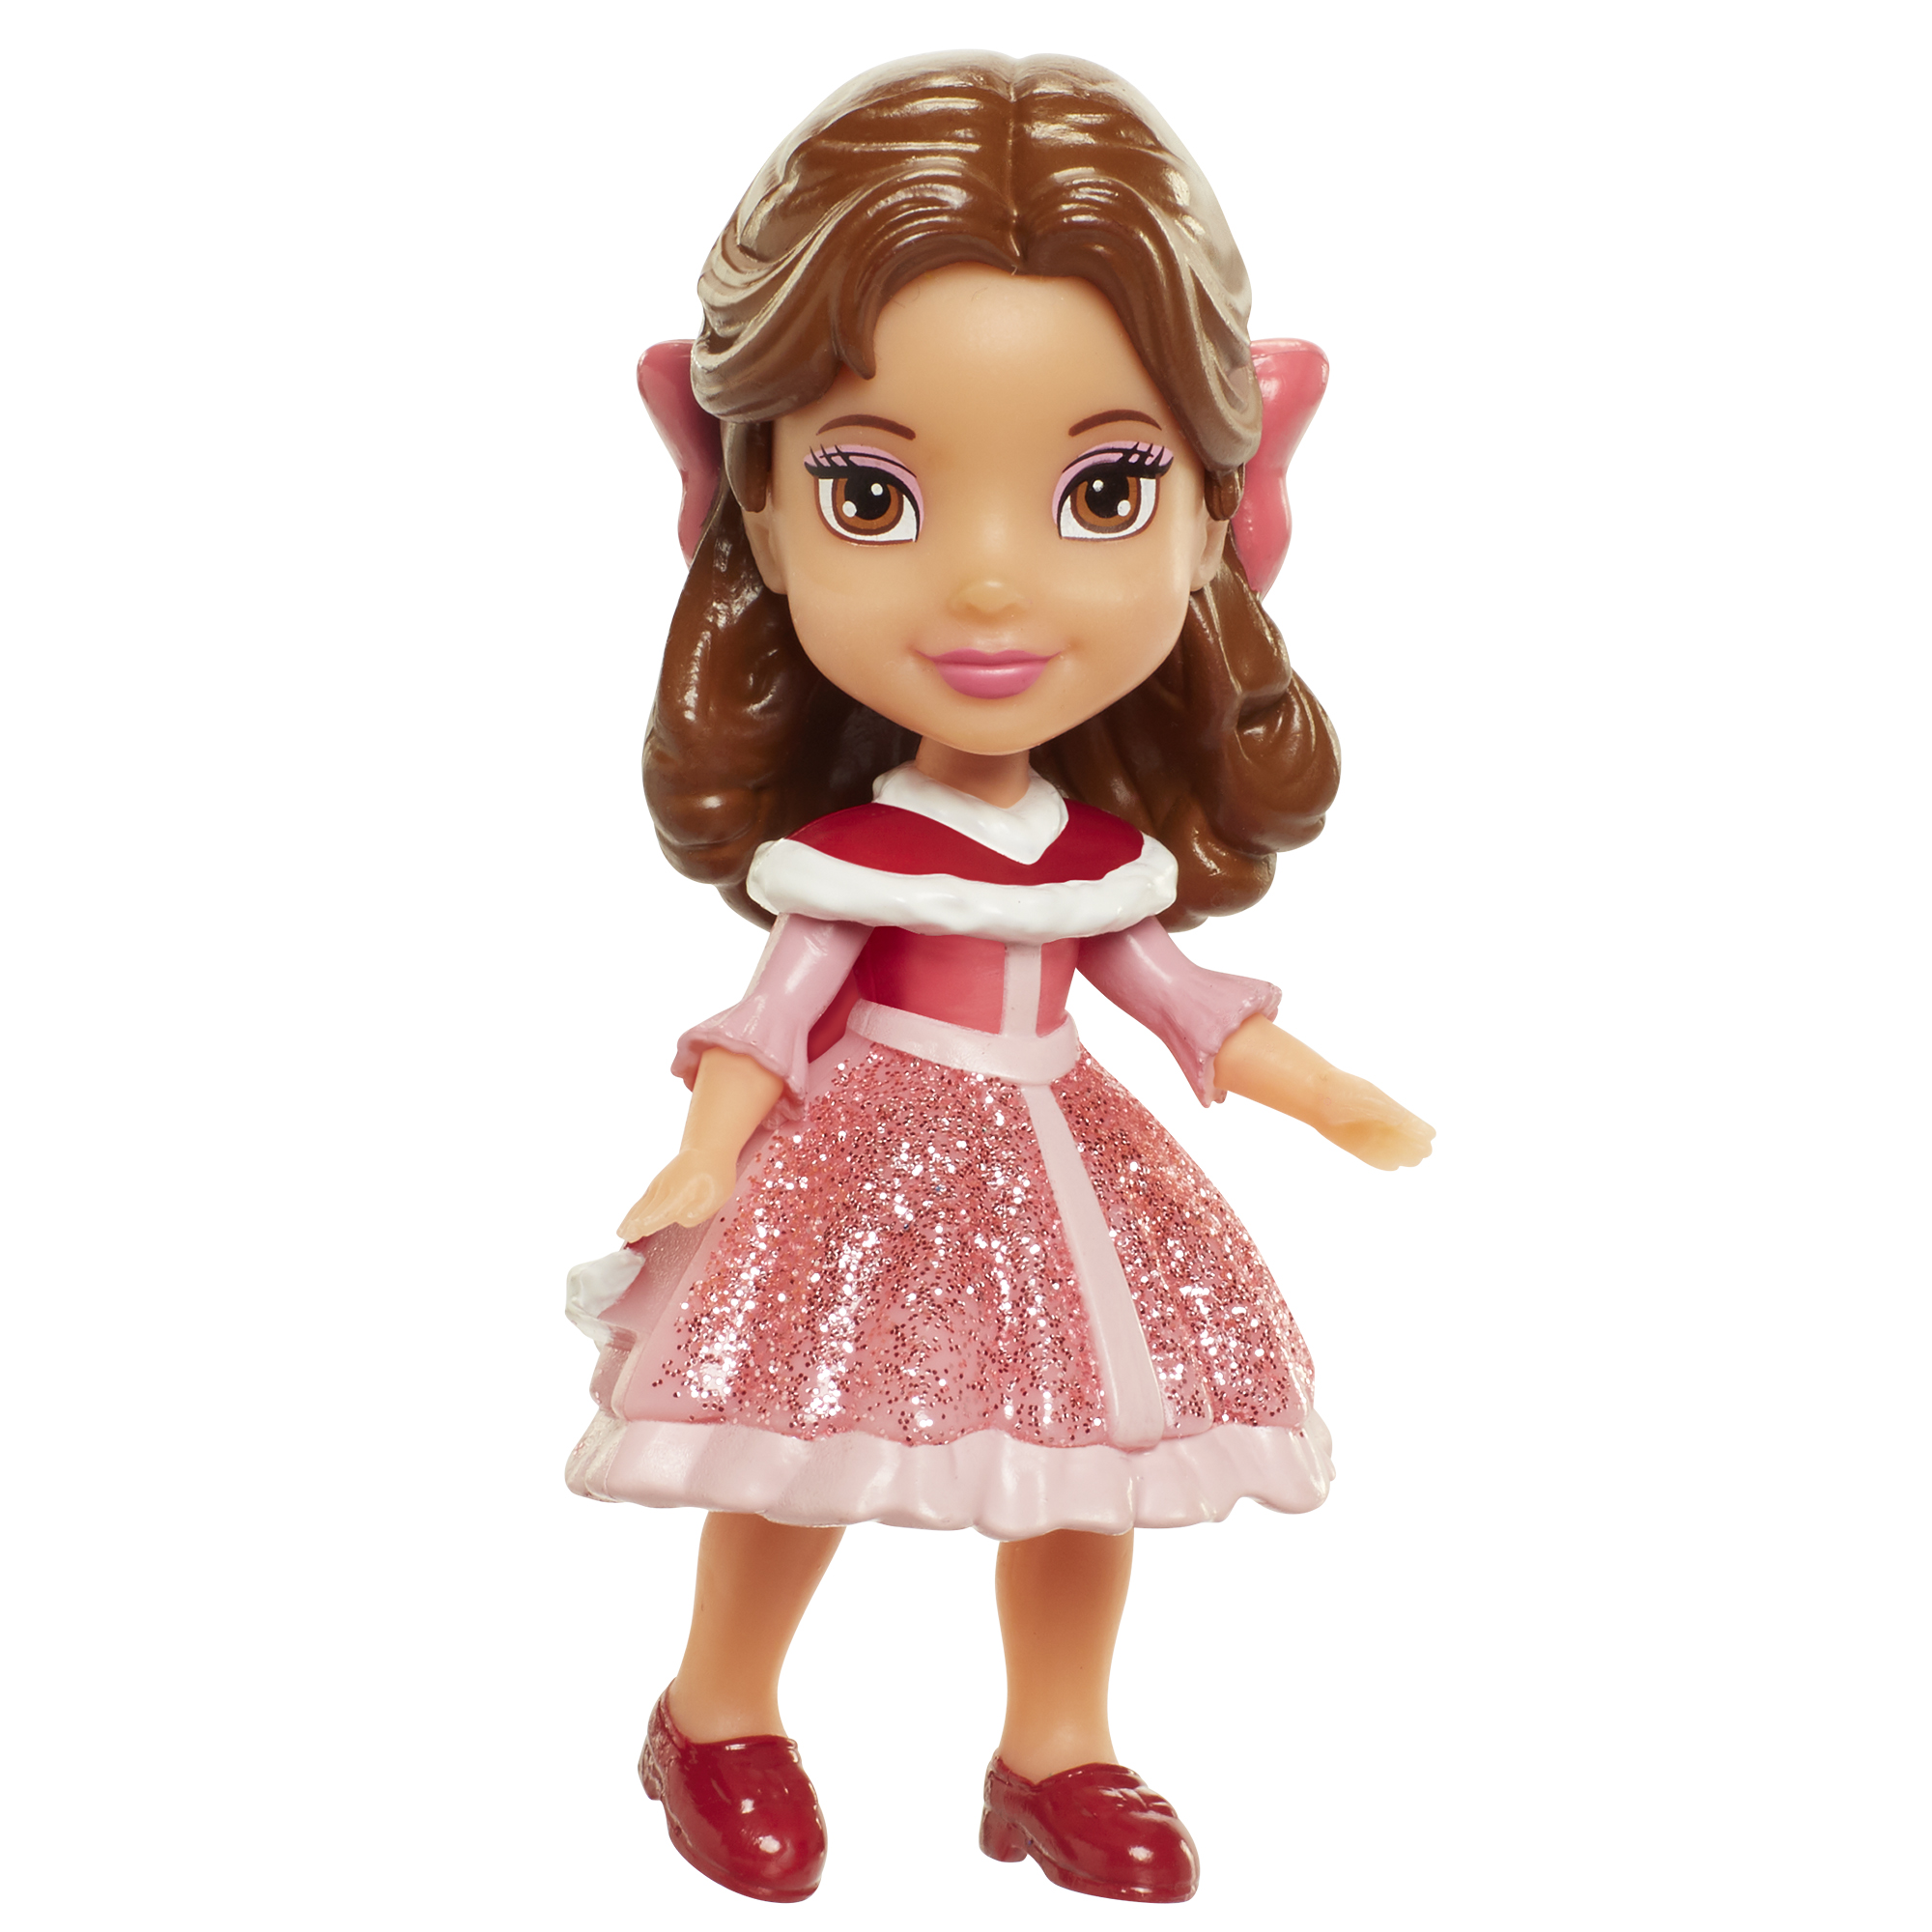 Belle 3 inch Mini Doll (Red Dress) Disney Princess